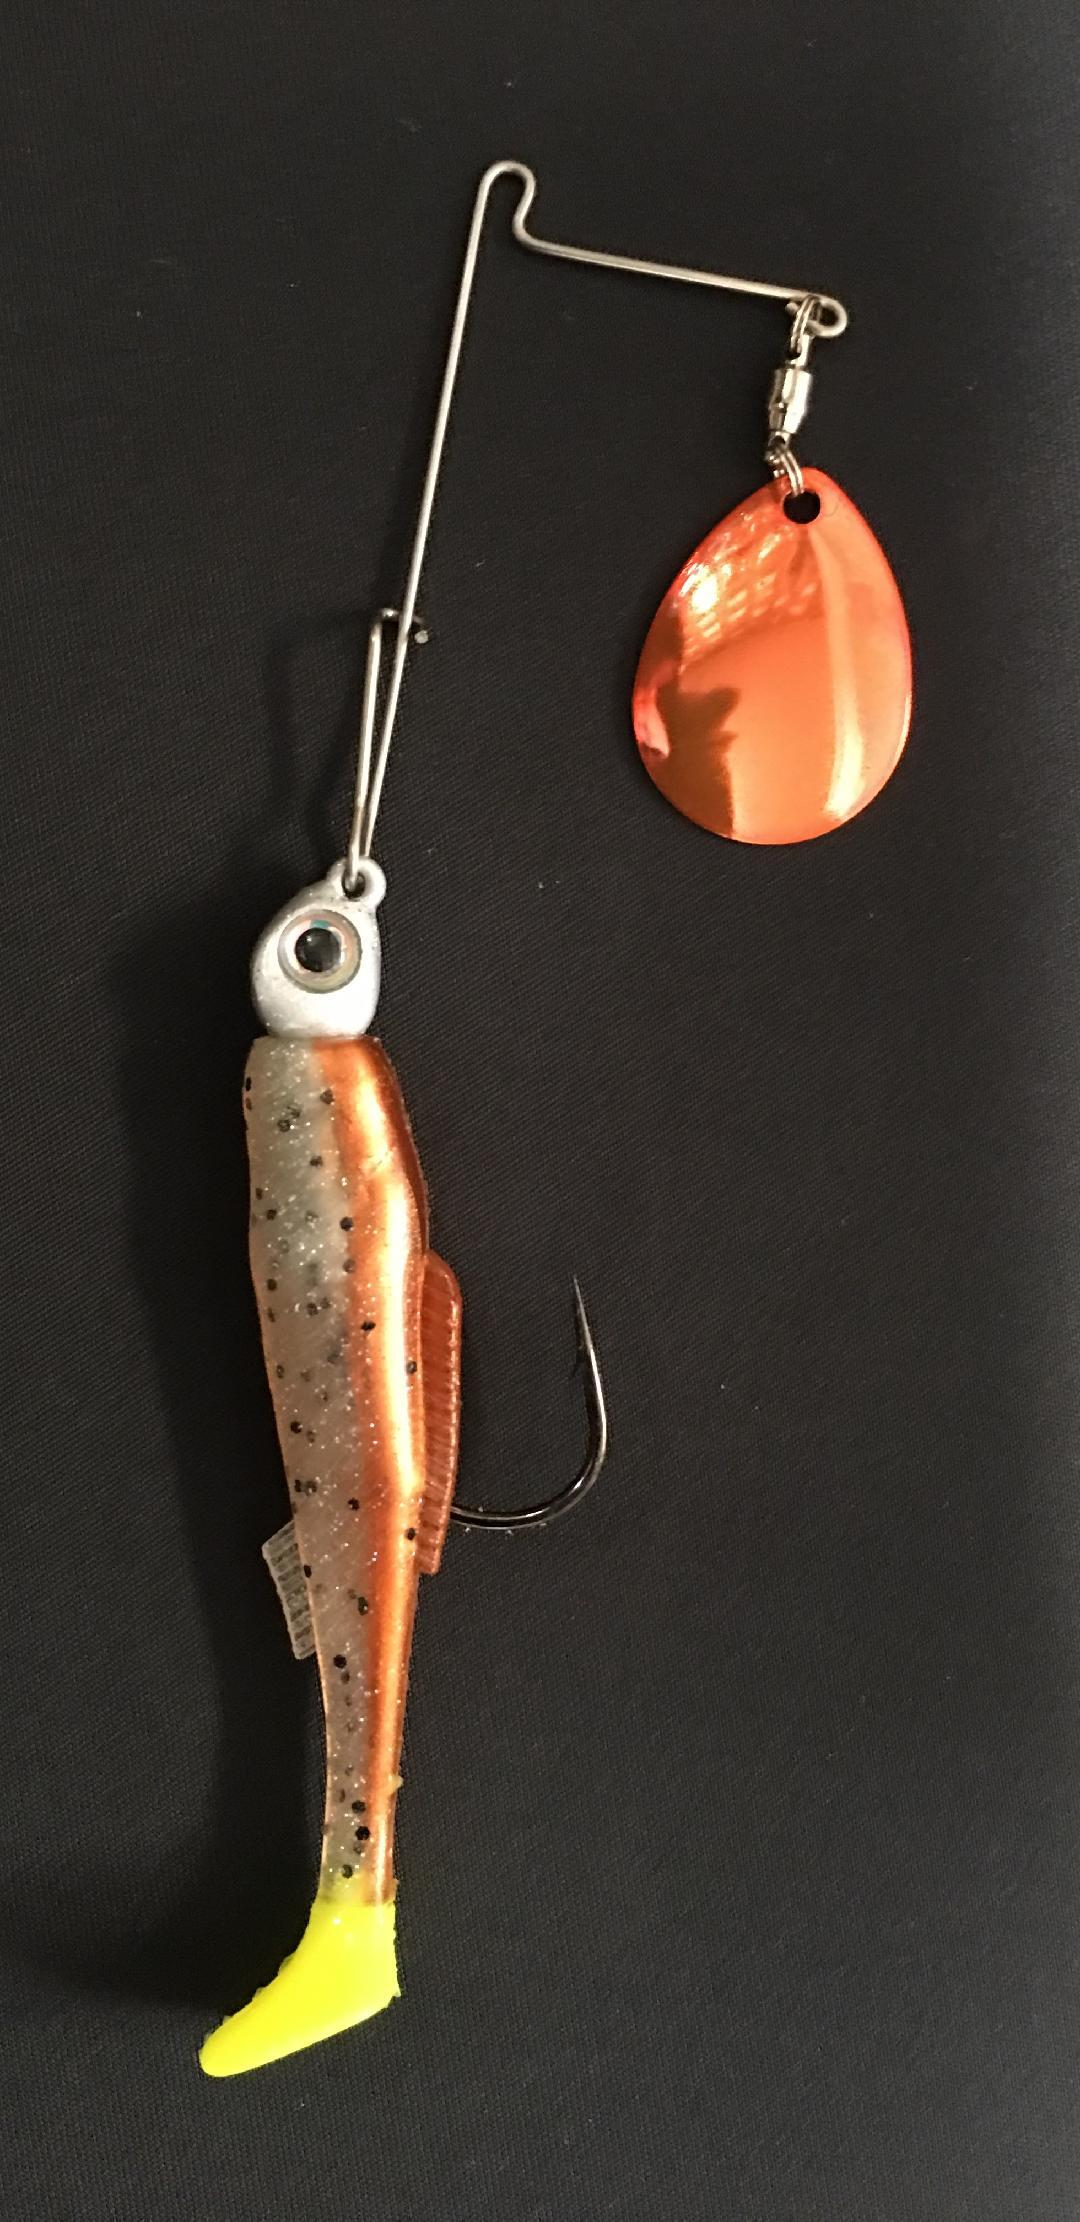 1/4 oz New Penny / Chart Tail - Kajun Boss Outdoors